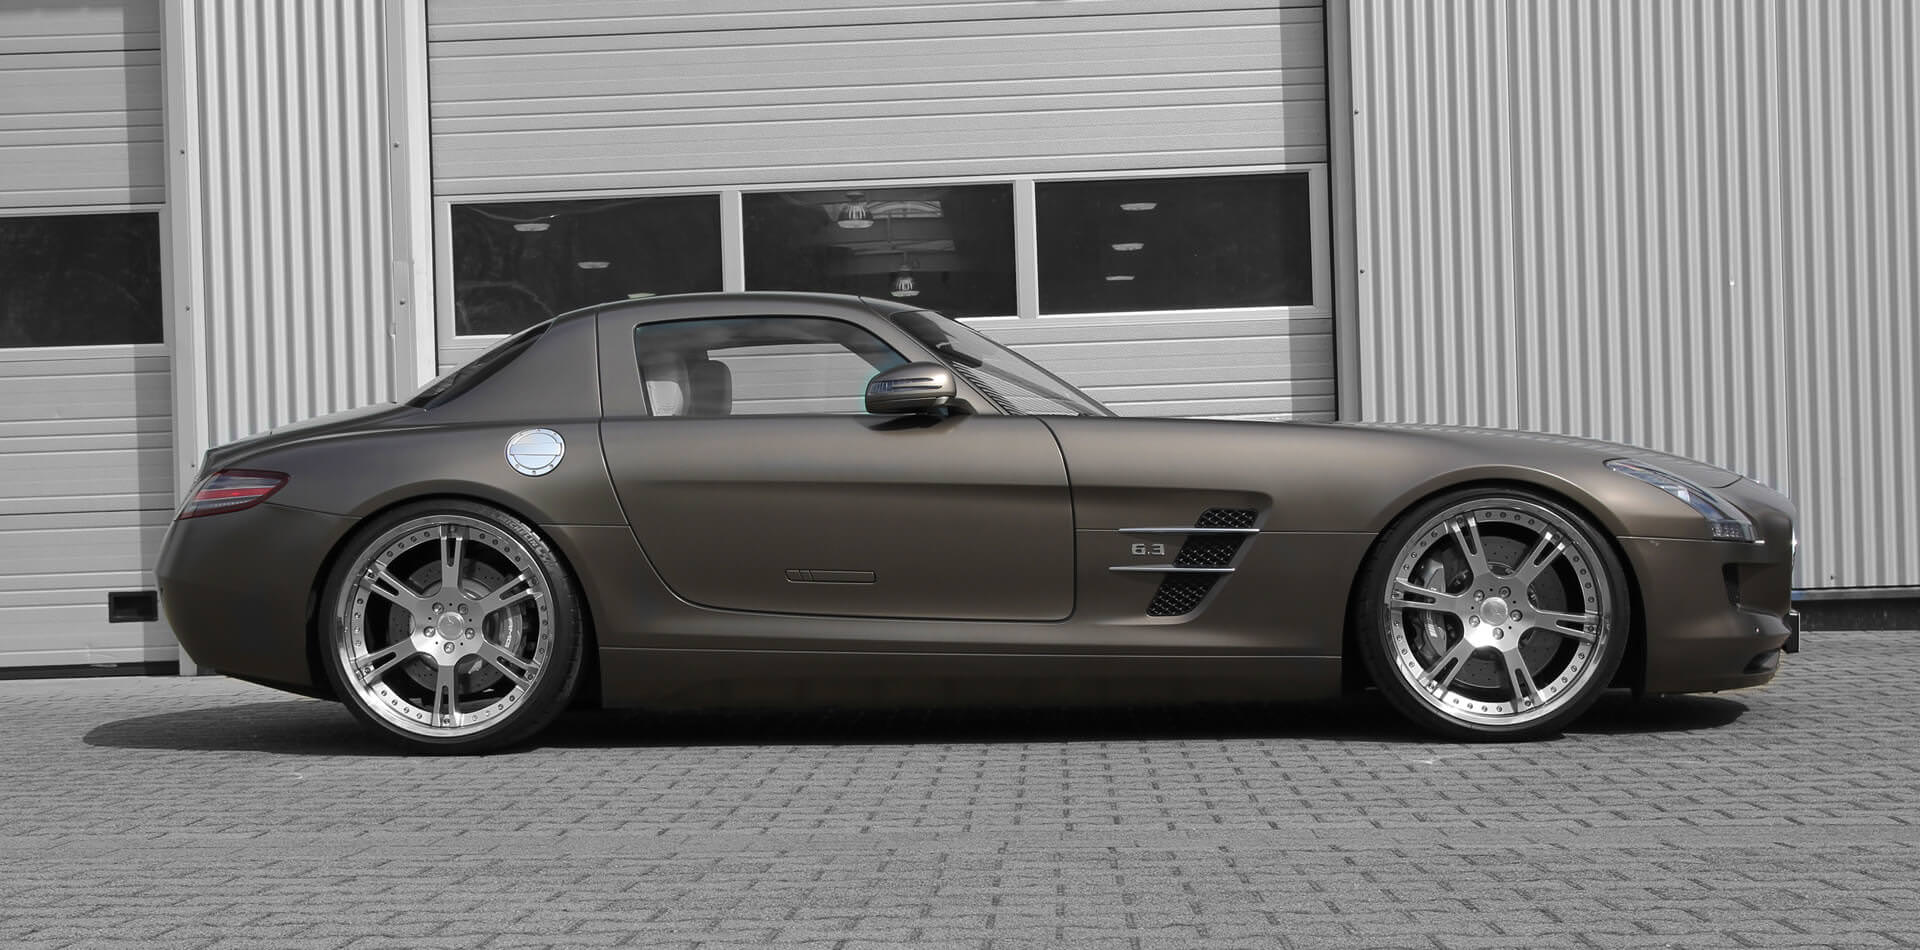 Mercedes SLS AMG Tuning made by Wheelsandmore